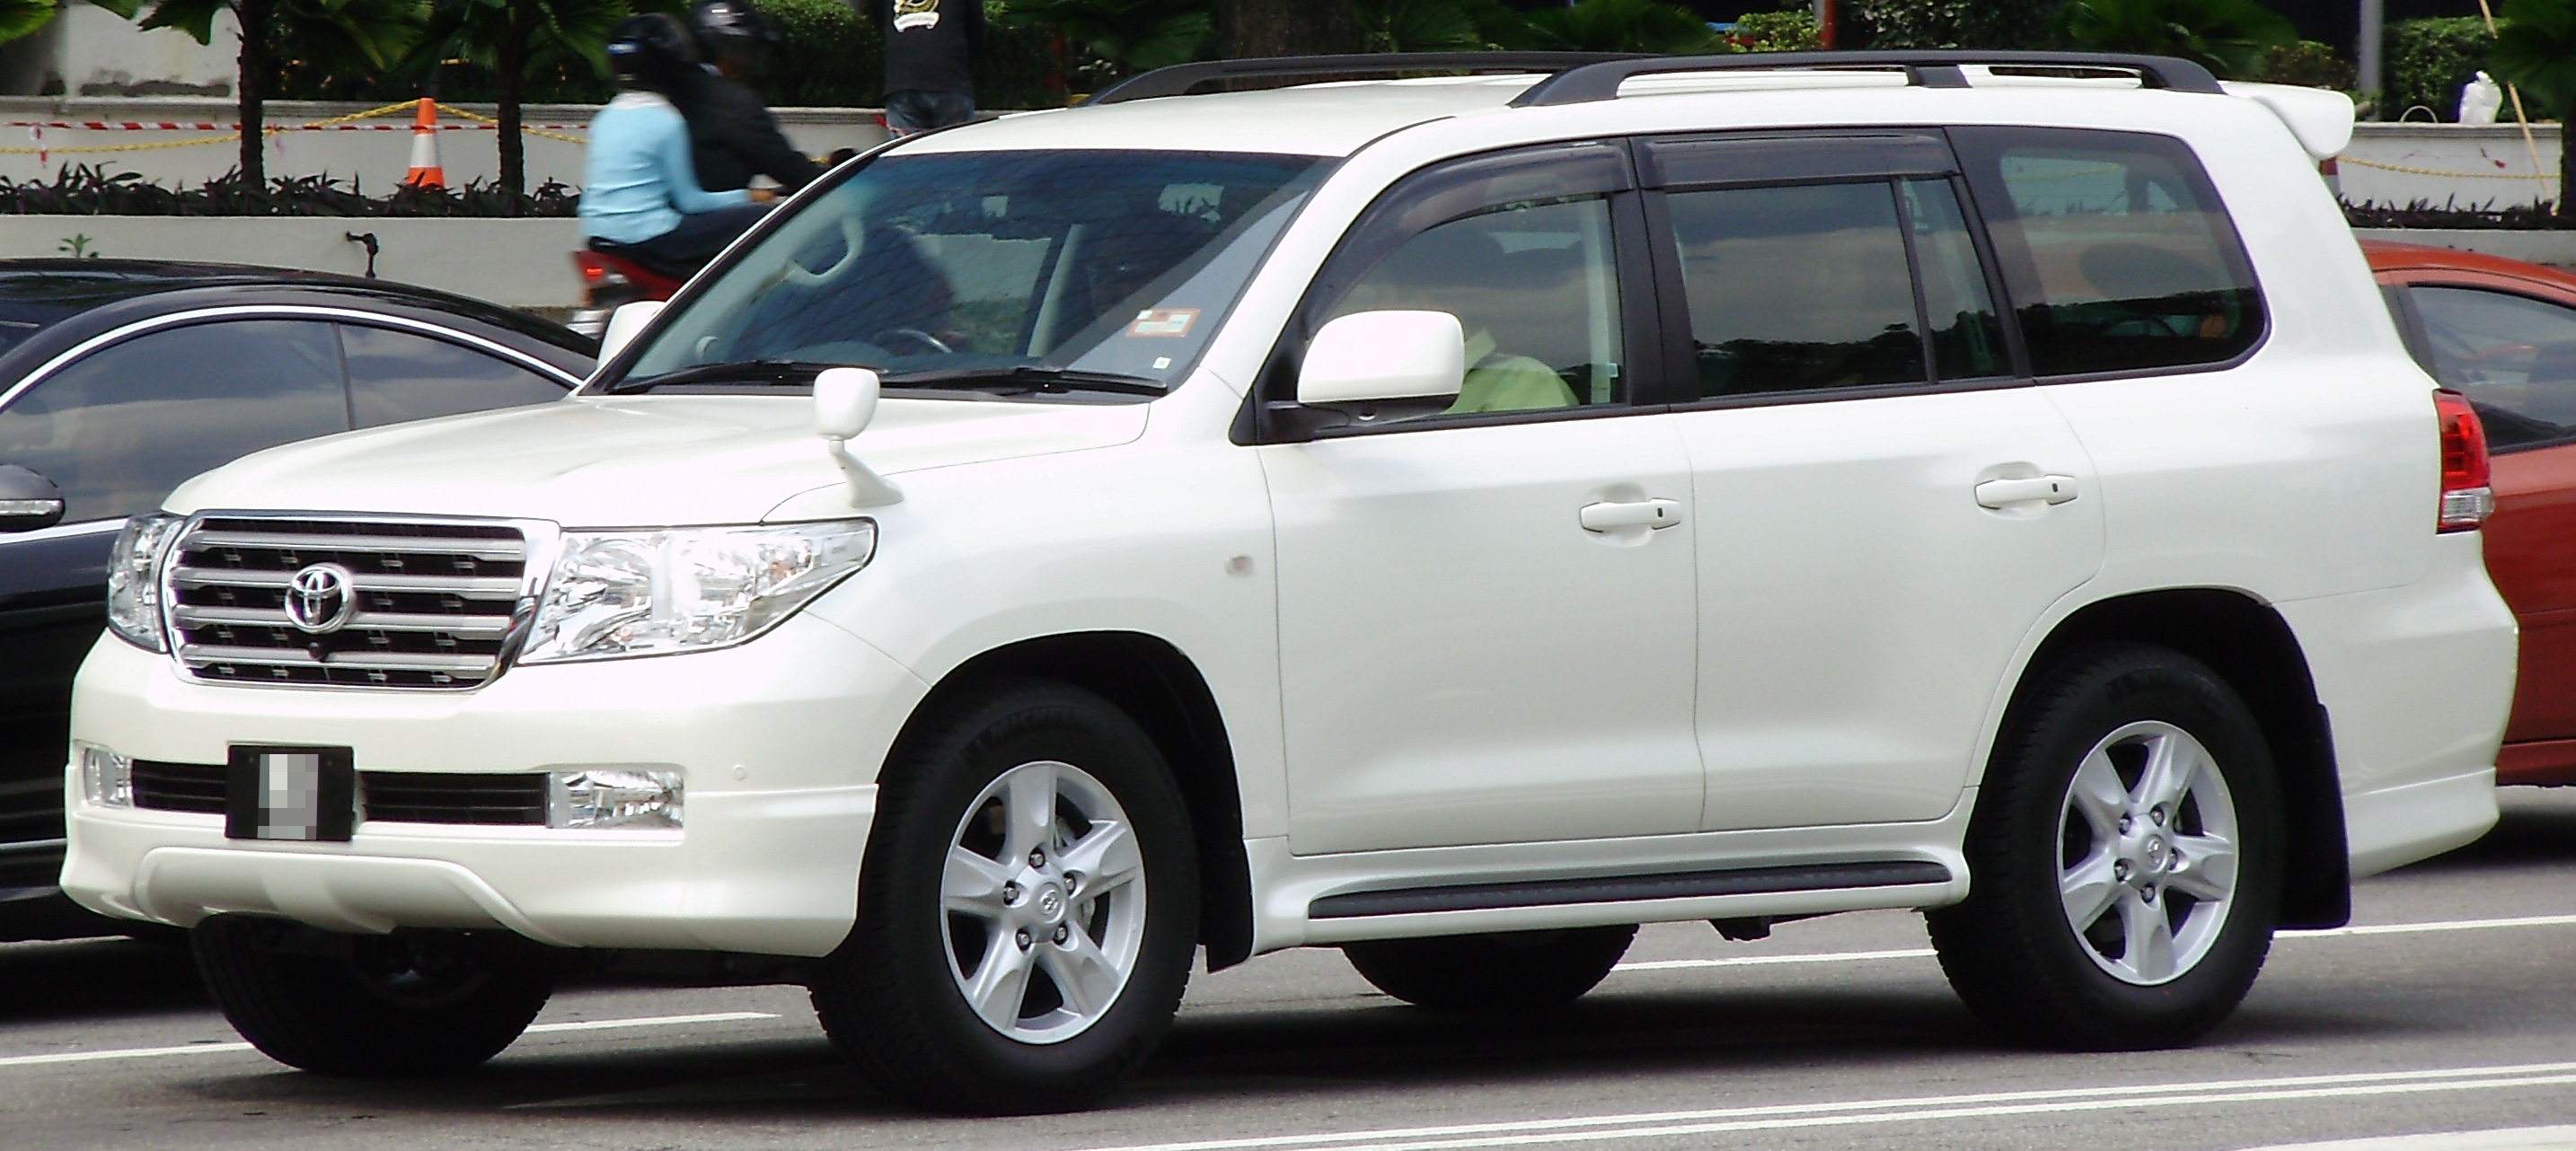 2008 Toyota Land Cruiser #11